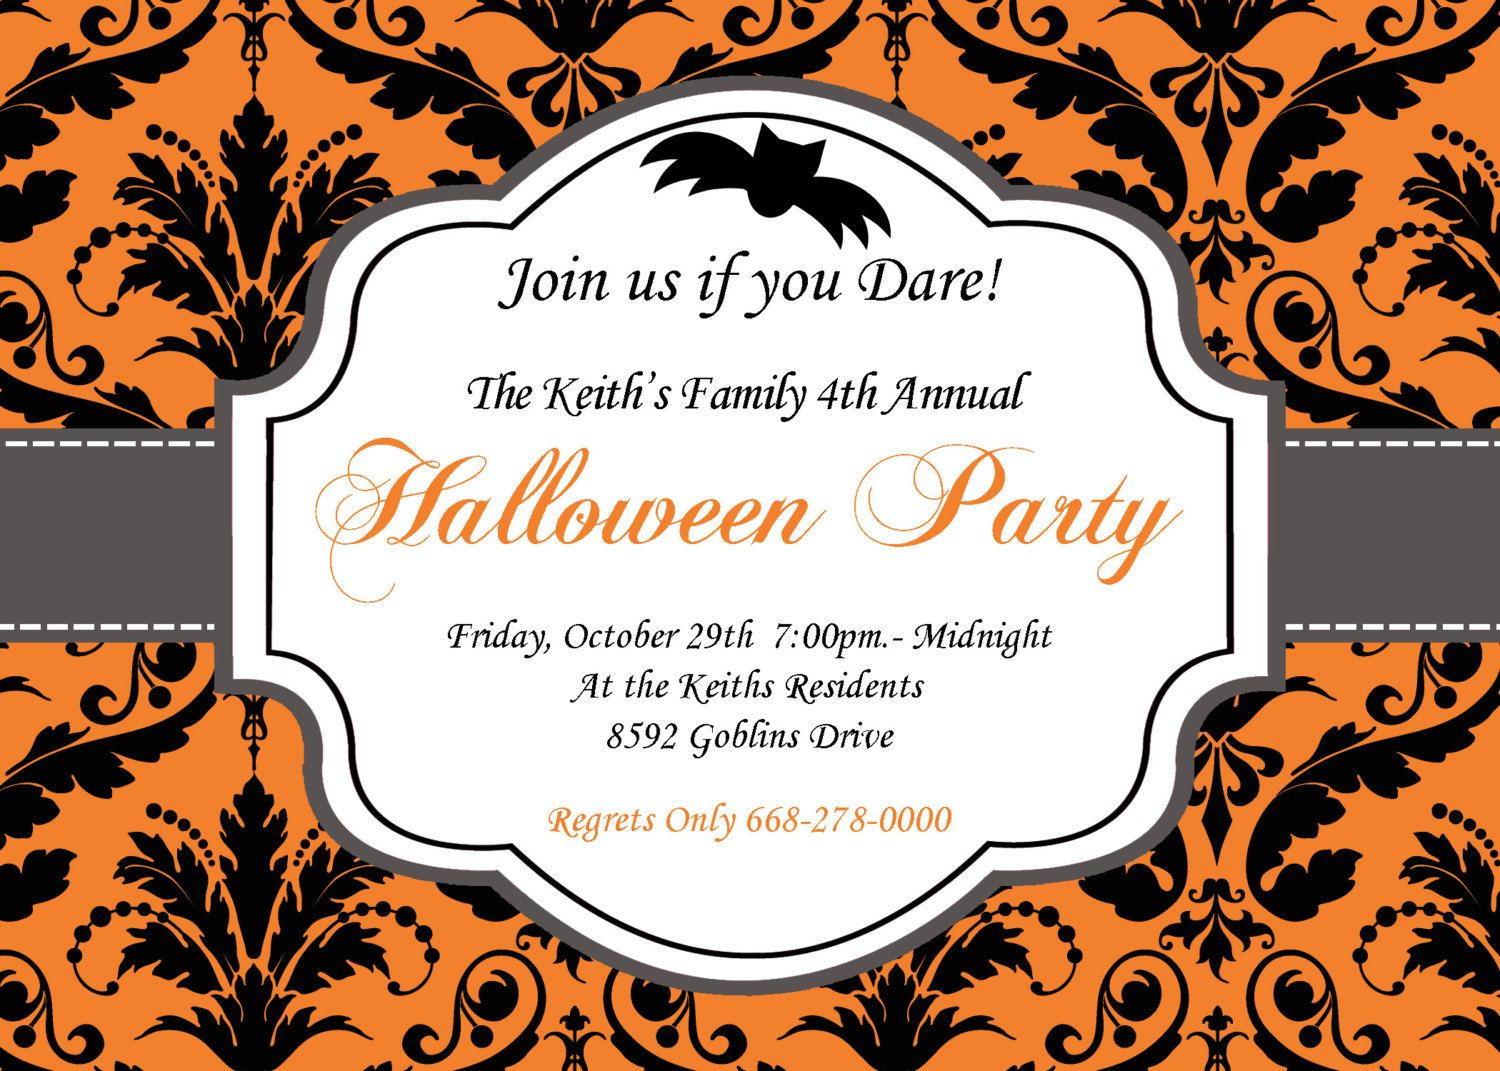 Halloween party invitation | Halloween dessert & Decorating ideas ...